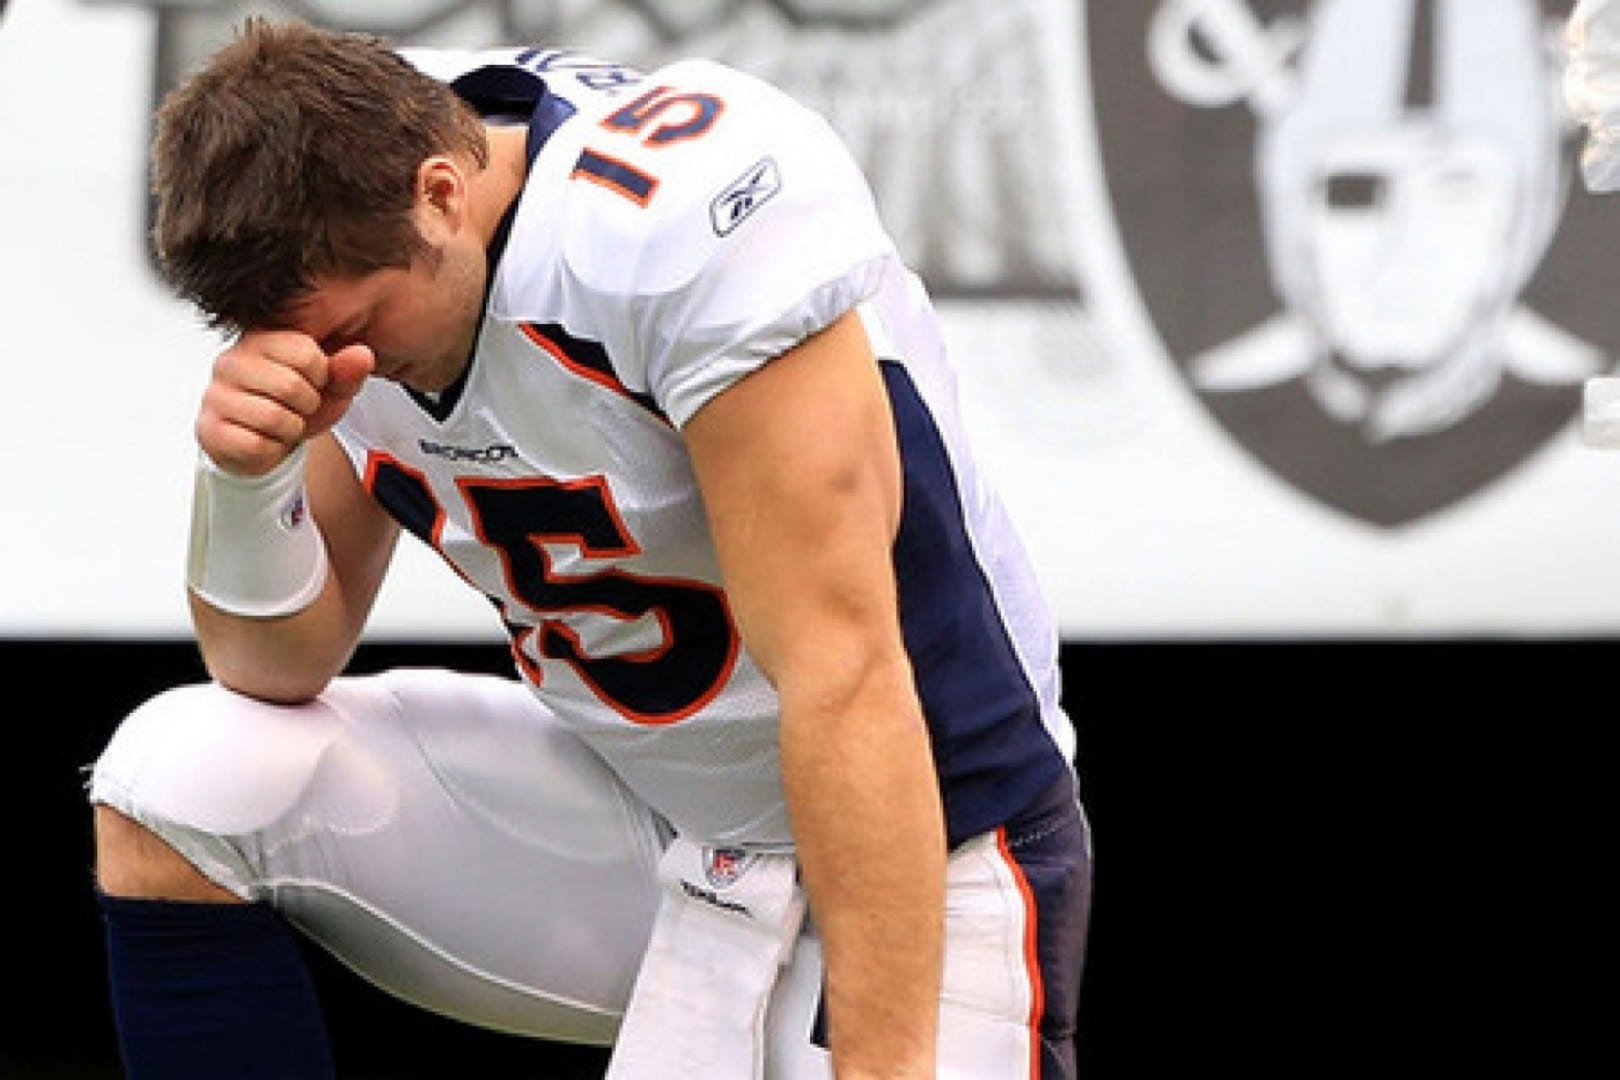 Tim Tebow Tebowing1 e1337691540419